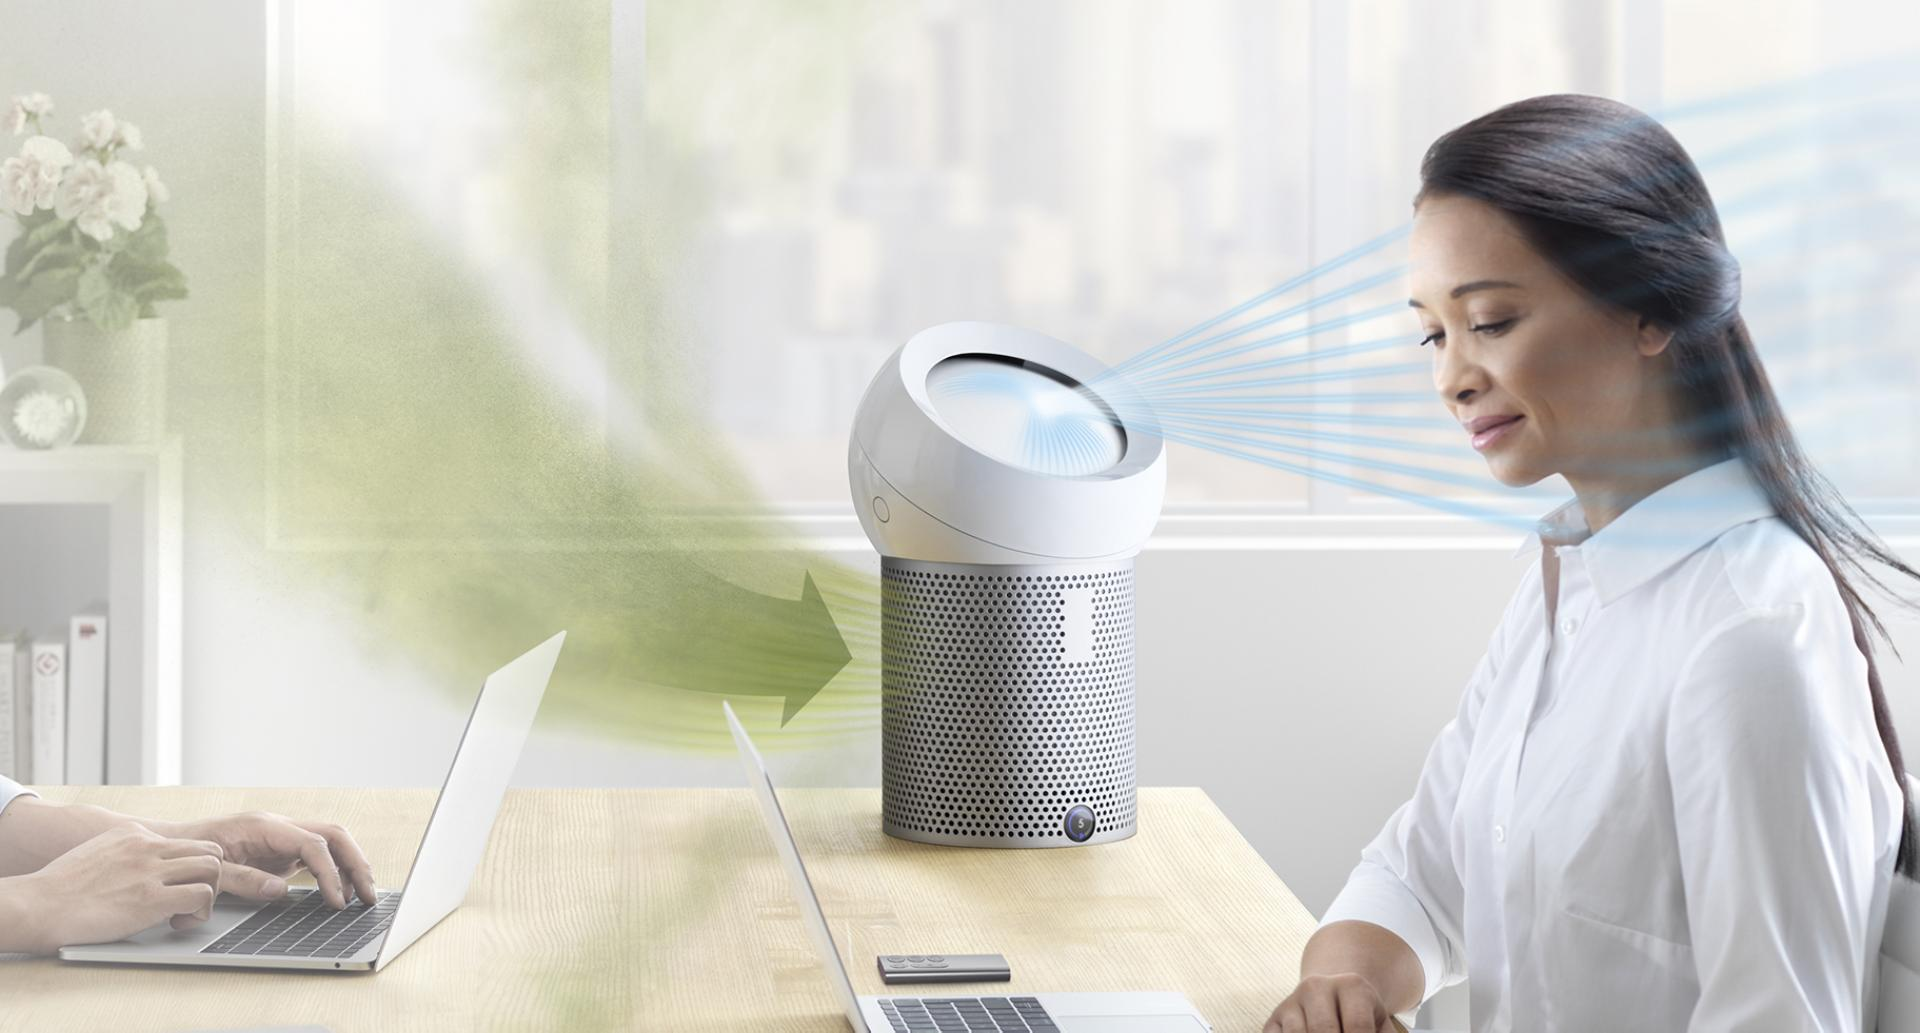 An office worker using a Dyson Pure Cool Me personal purifier fan